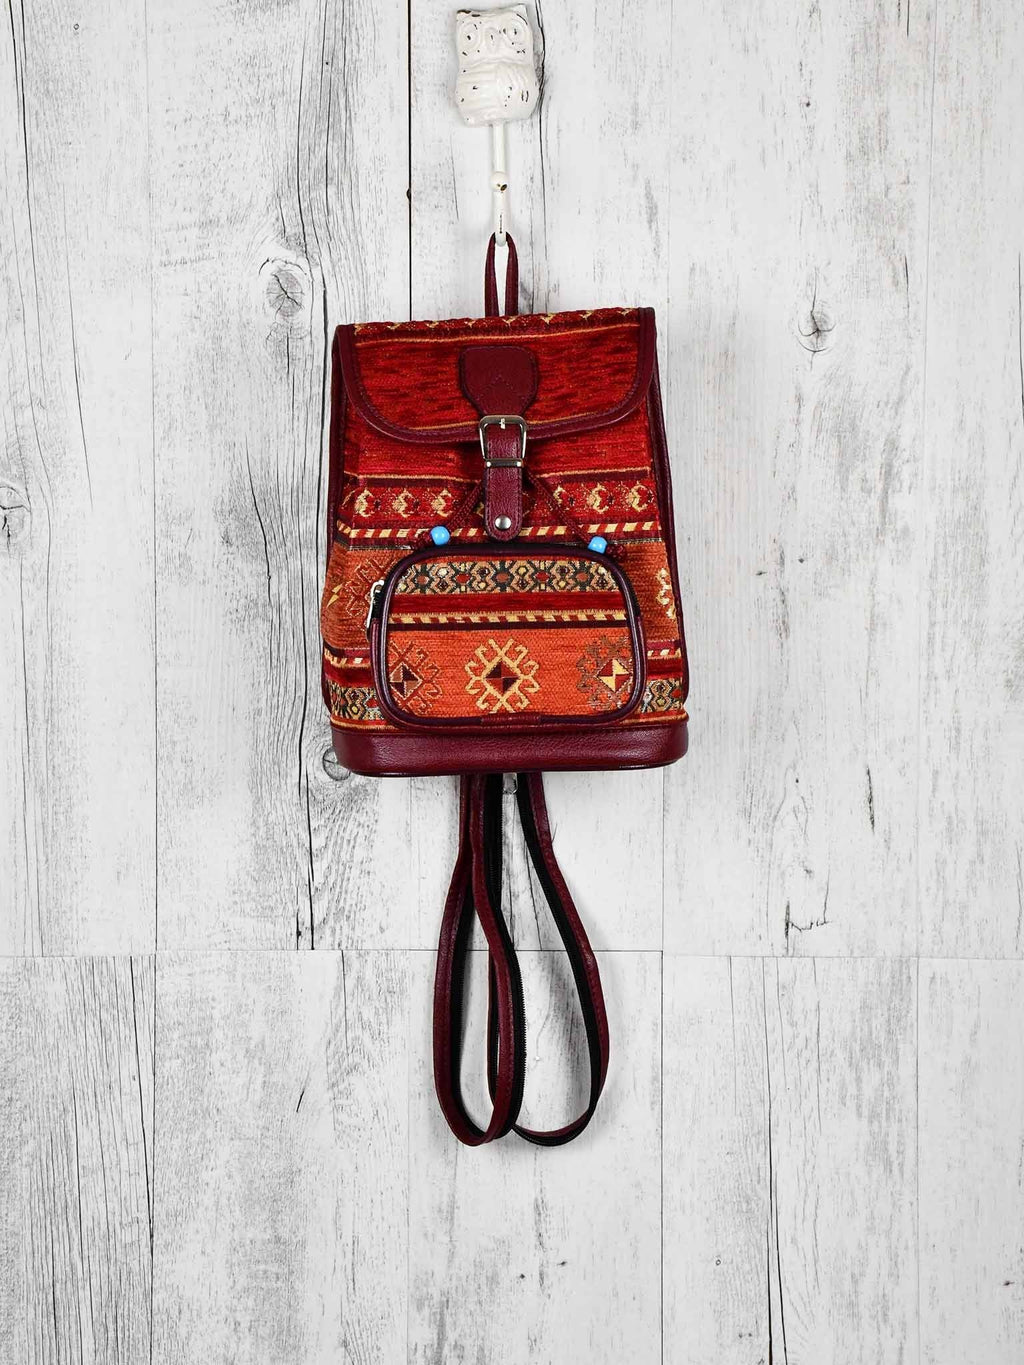 Turkish Handbag Backpack Aztec Red Rusty Textile Sydney Grand Bazaar